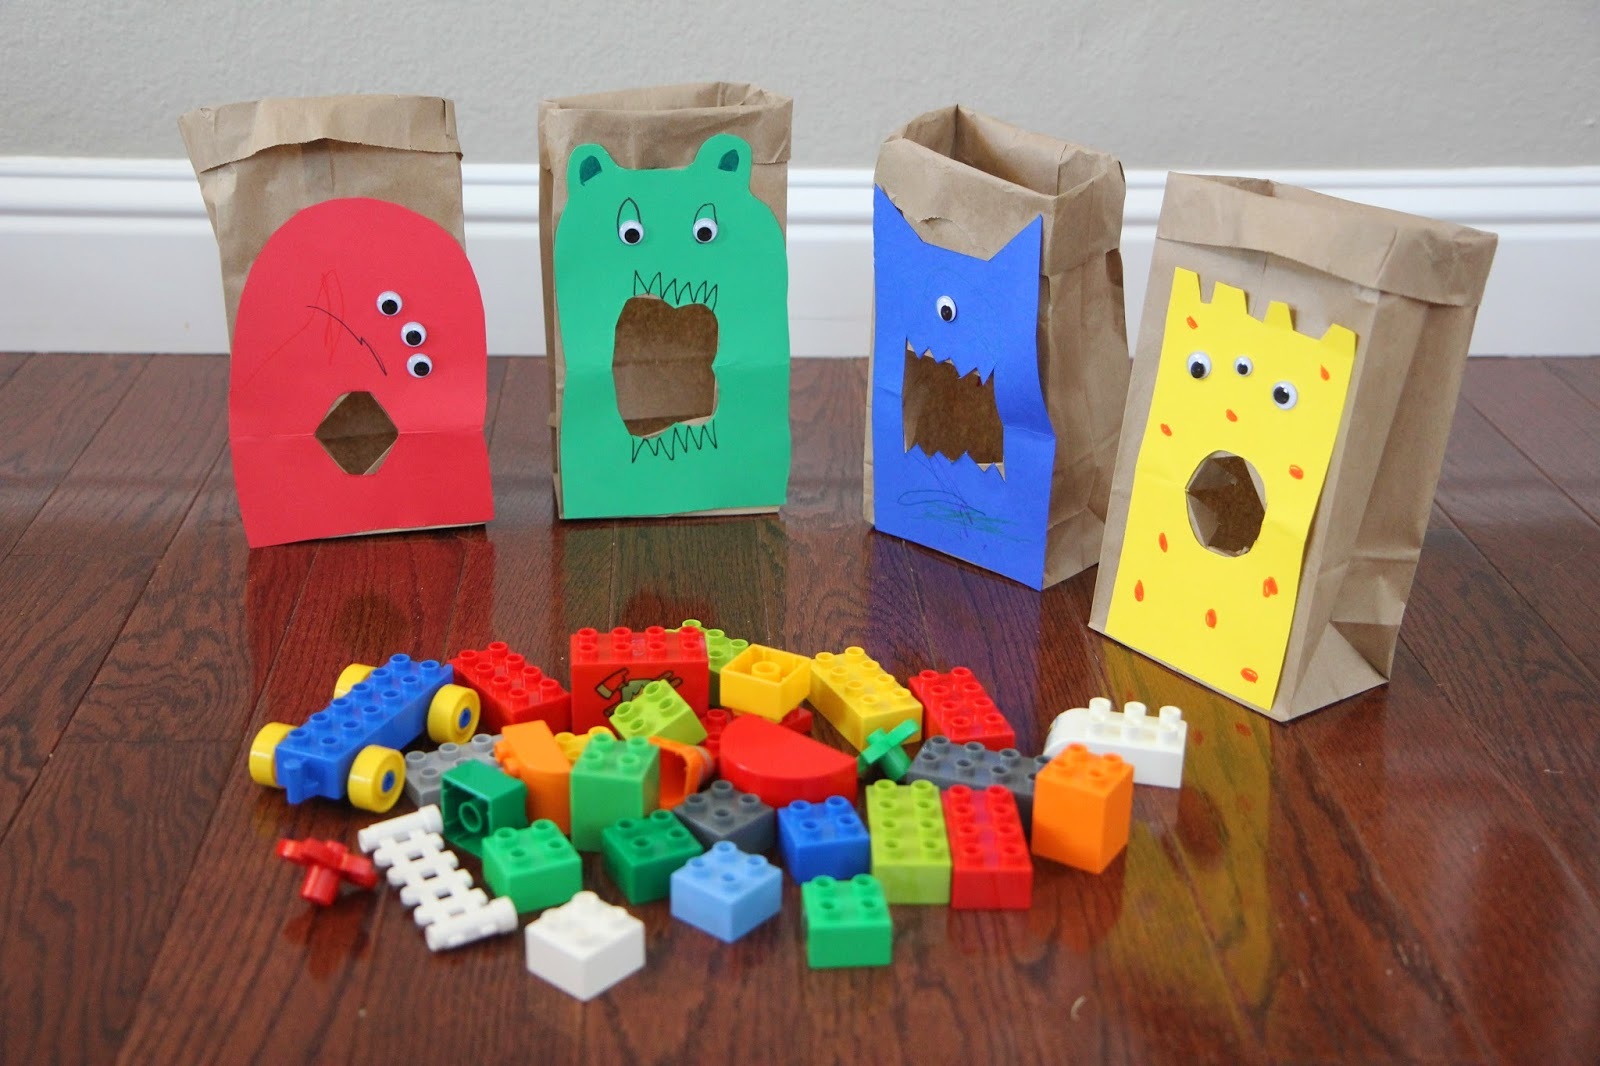 Toddler Approved!: Feed the LEGO Monsters: A Sorting and Building ...